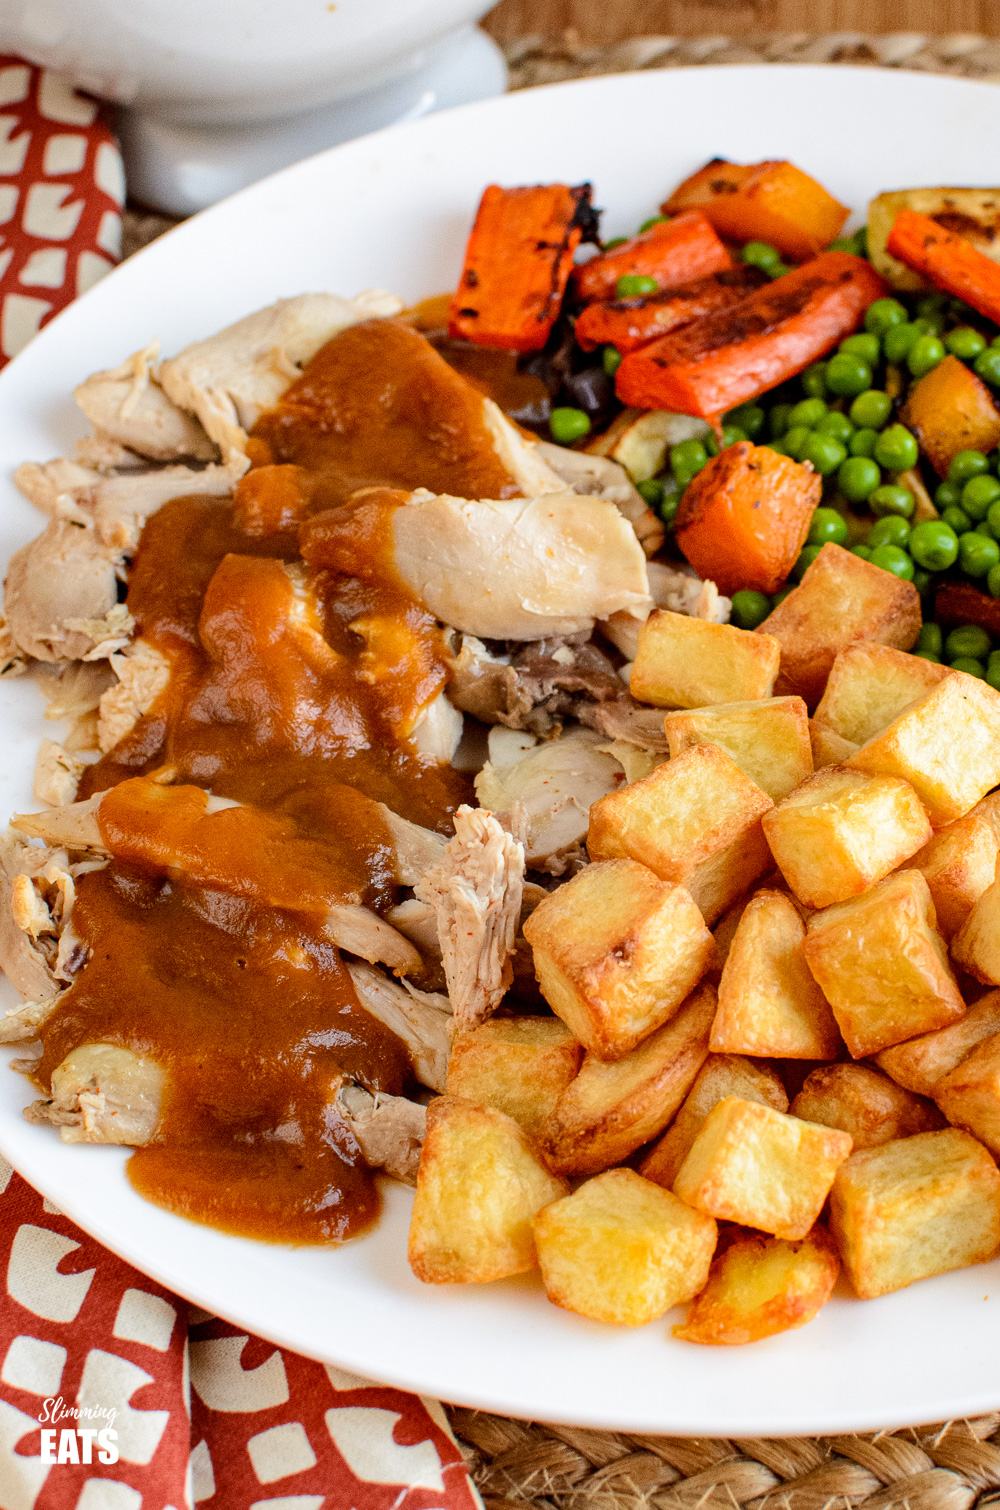 close up of instant pot cooked whole chicken on plate with vegetables, drizzled with gravy